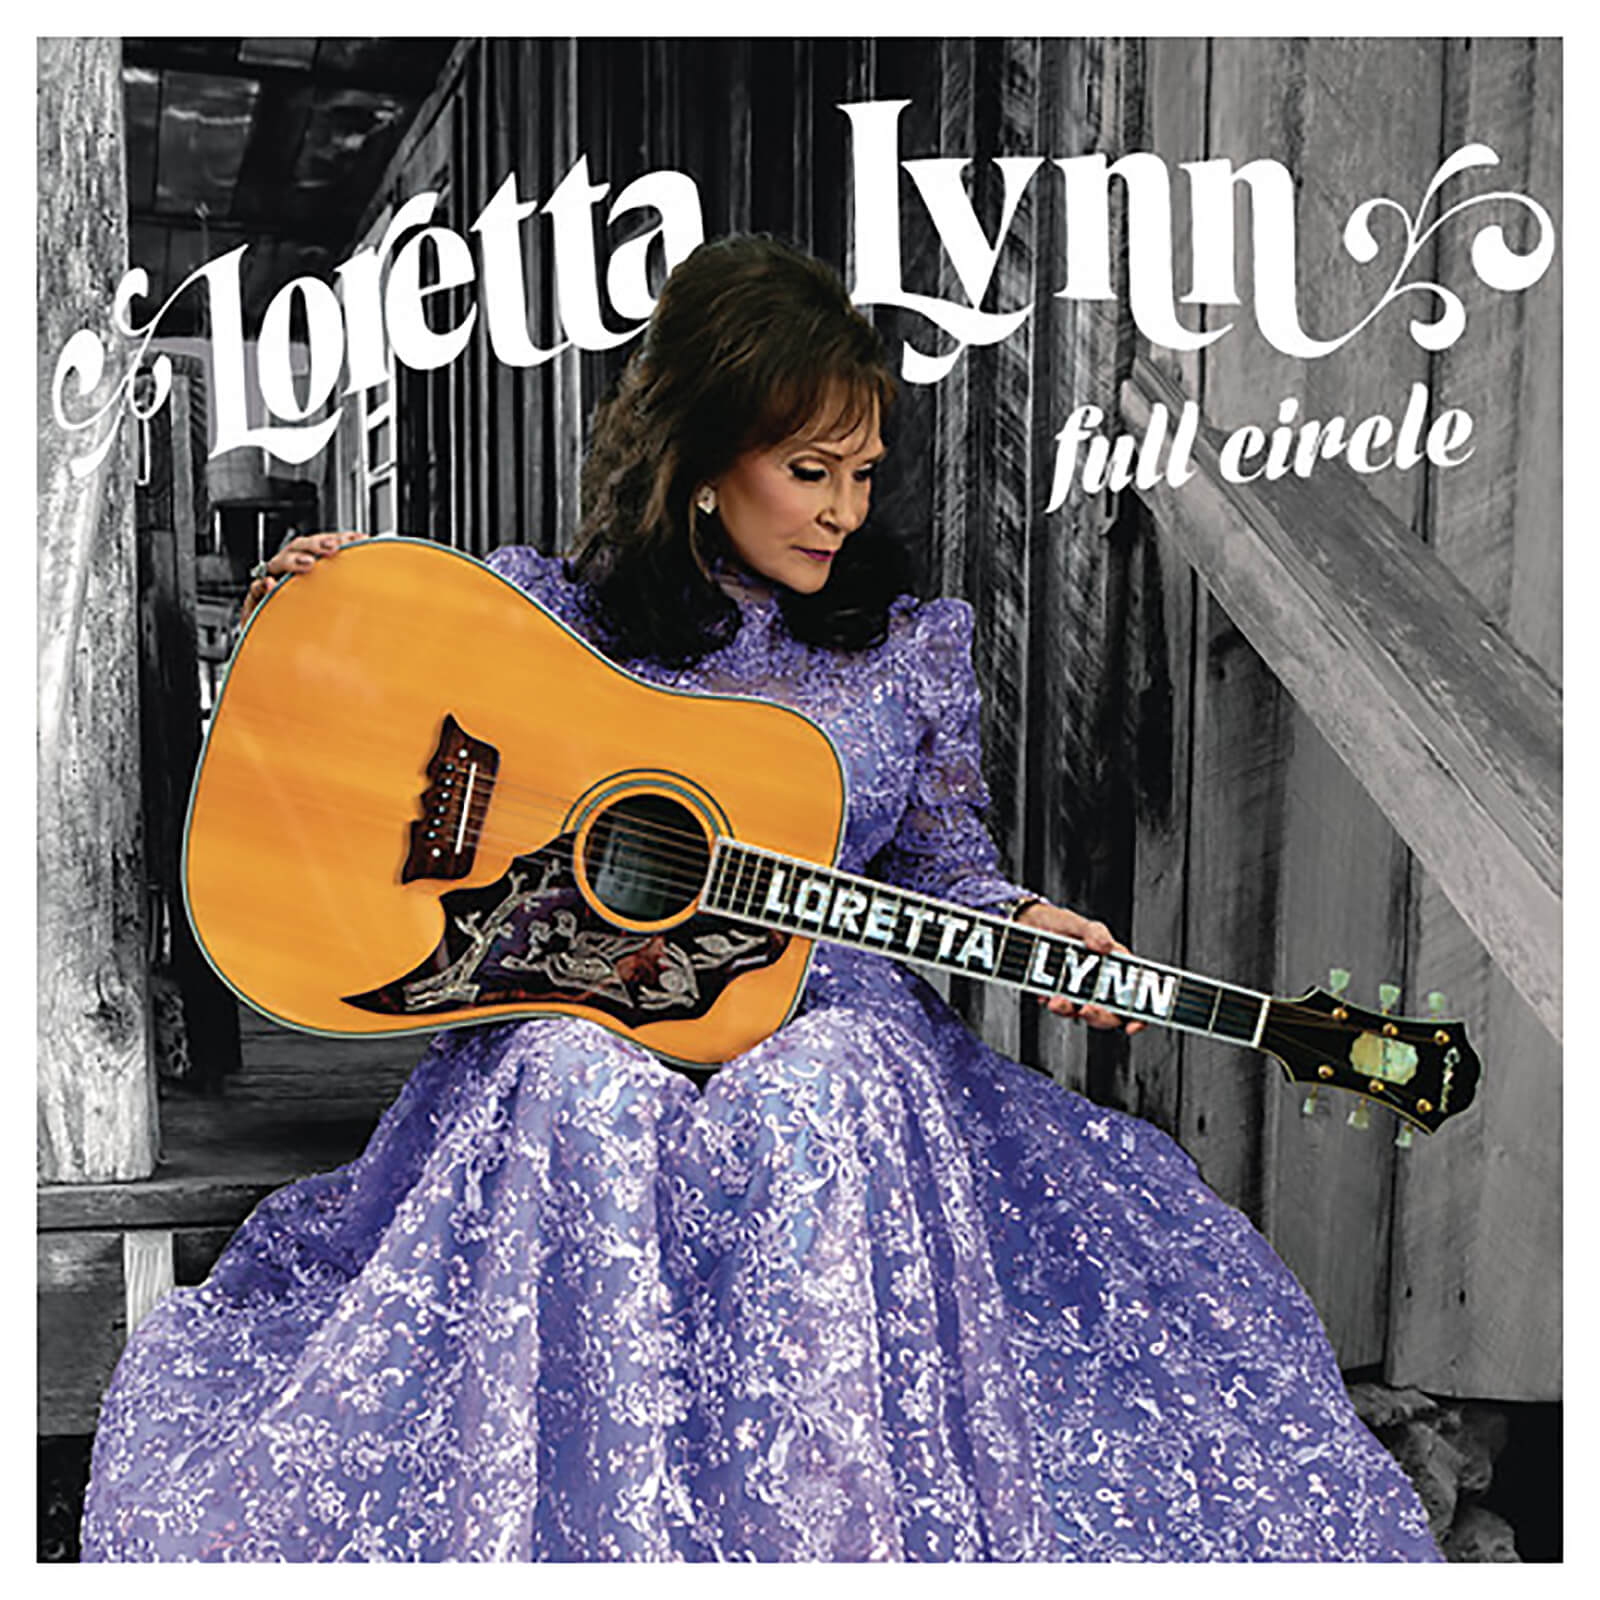 Loretta Lynn - Full Circle - Vinyl